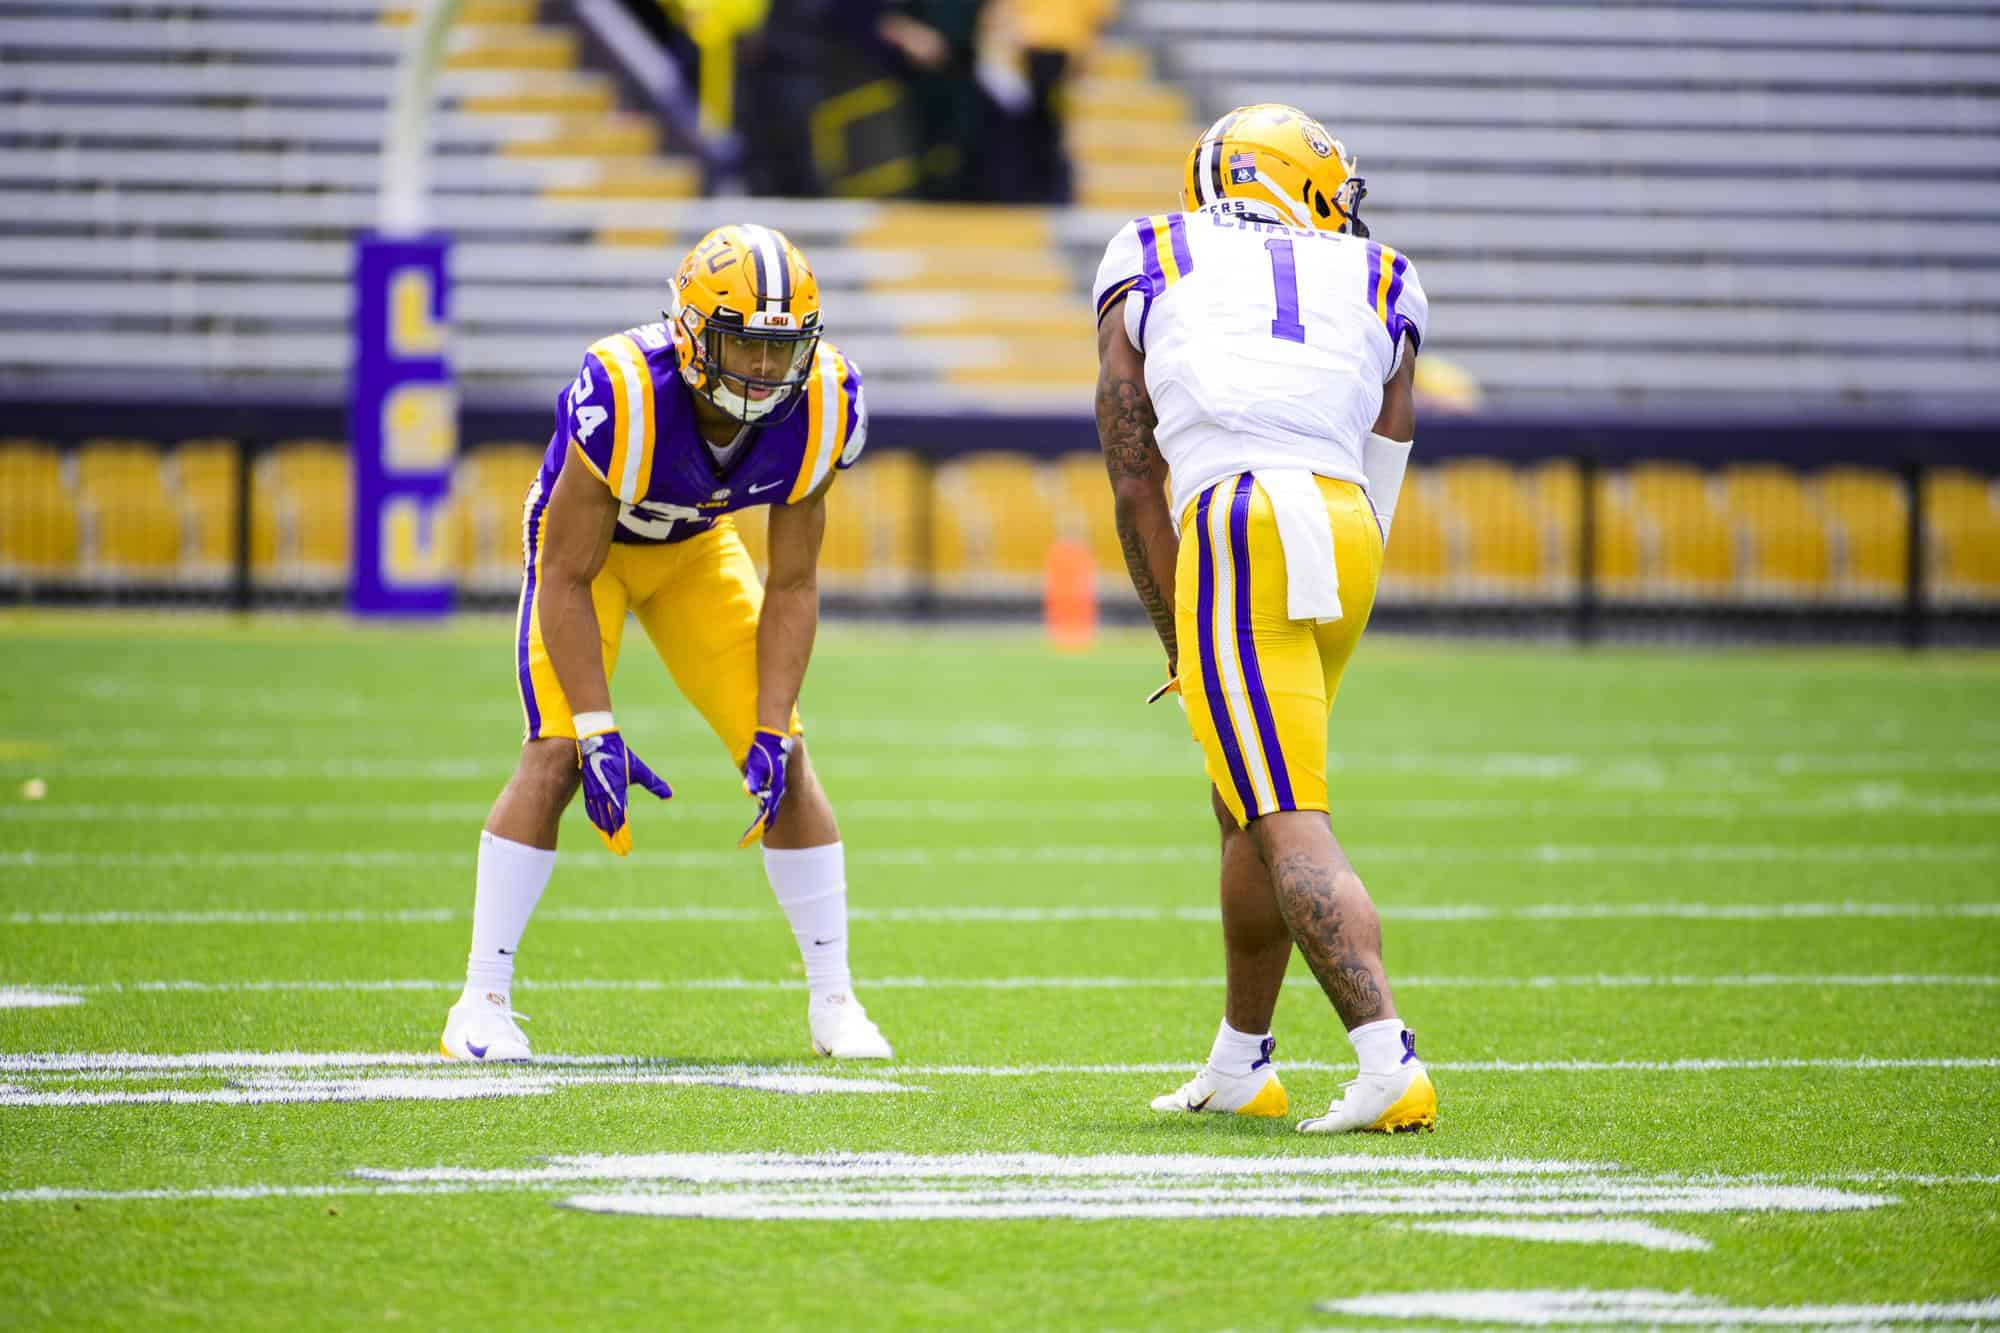 2021 NFL Draft: Who are the LSU Tigers' top prospects?